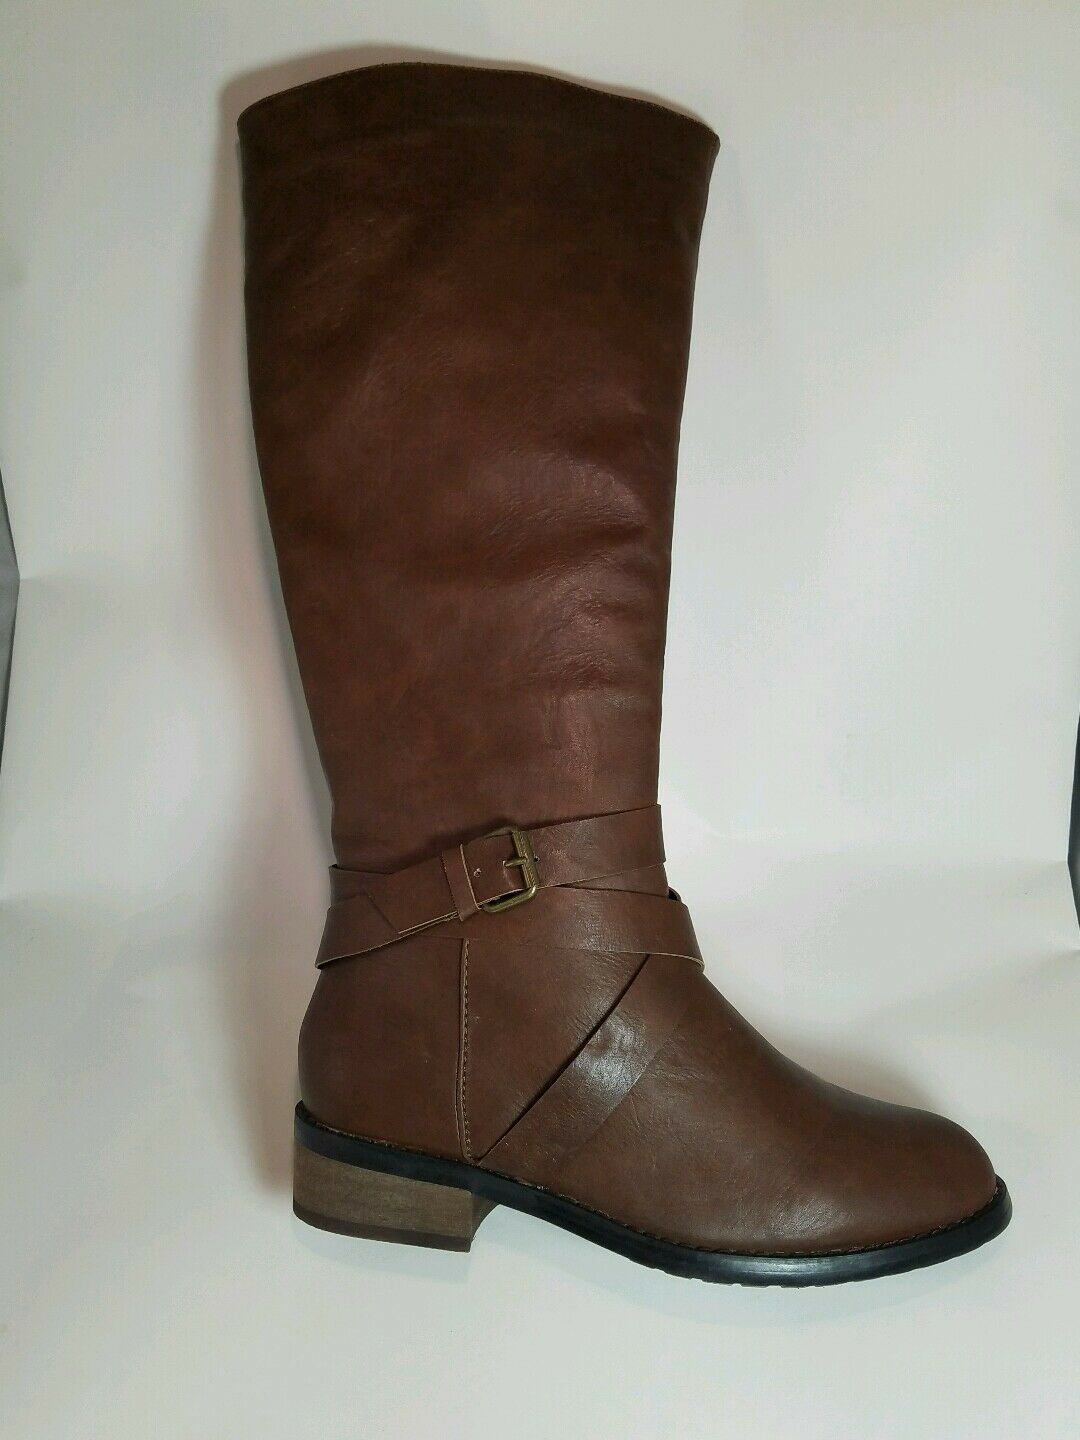 Bucco Capensis Venita Brown Women's Riding Boot SIZE 8.5 BOX IS DISTRESSED